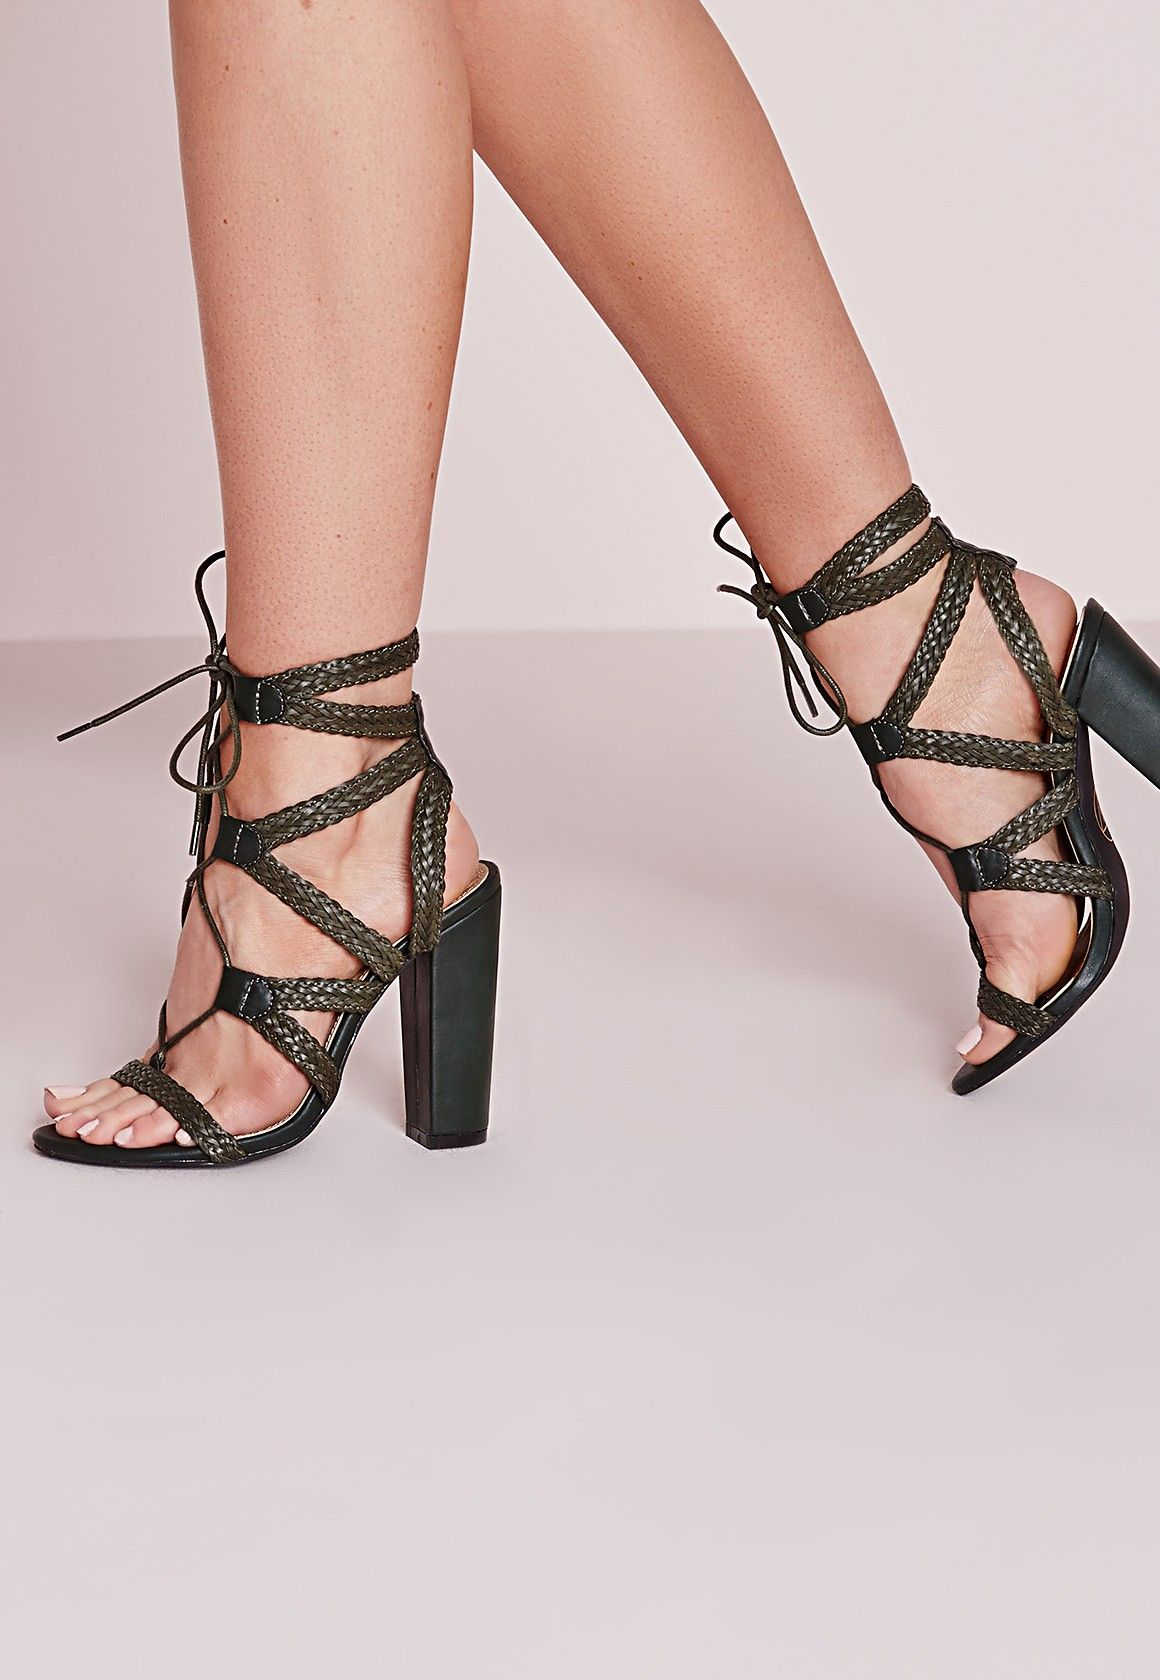 920be39ee11964 Missguided - Sandales vert kaki à talon carré et lacets | Pieces ...